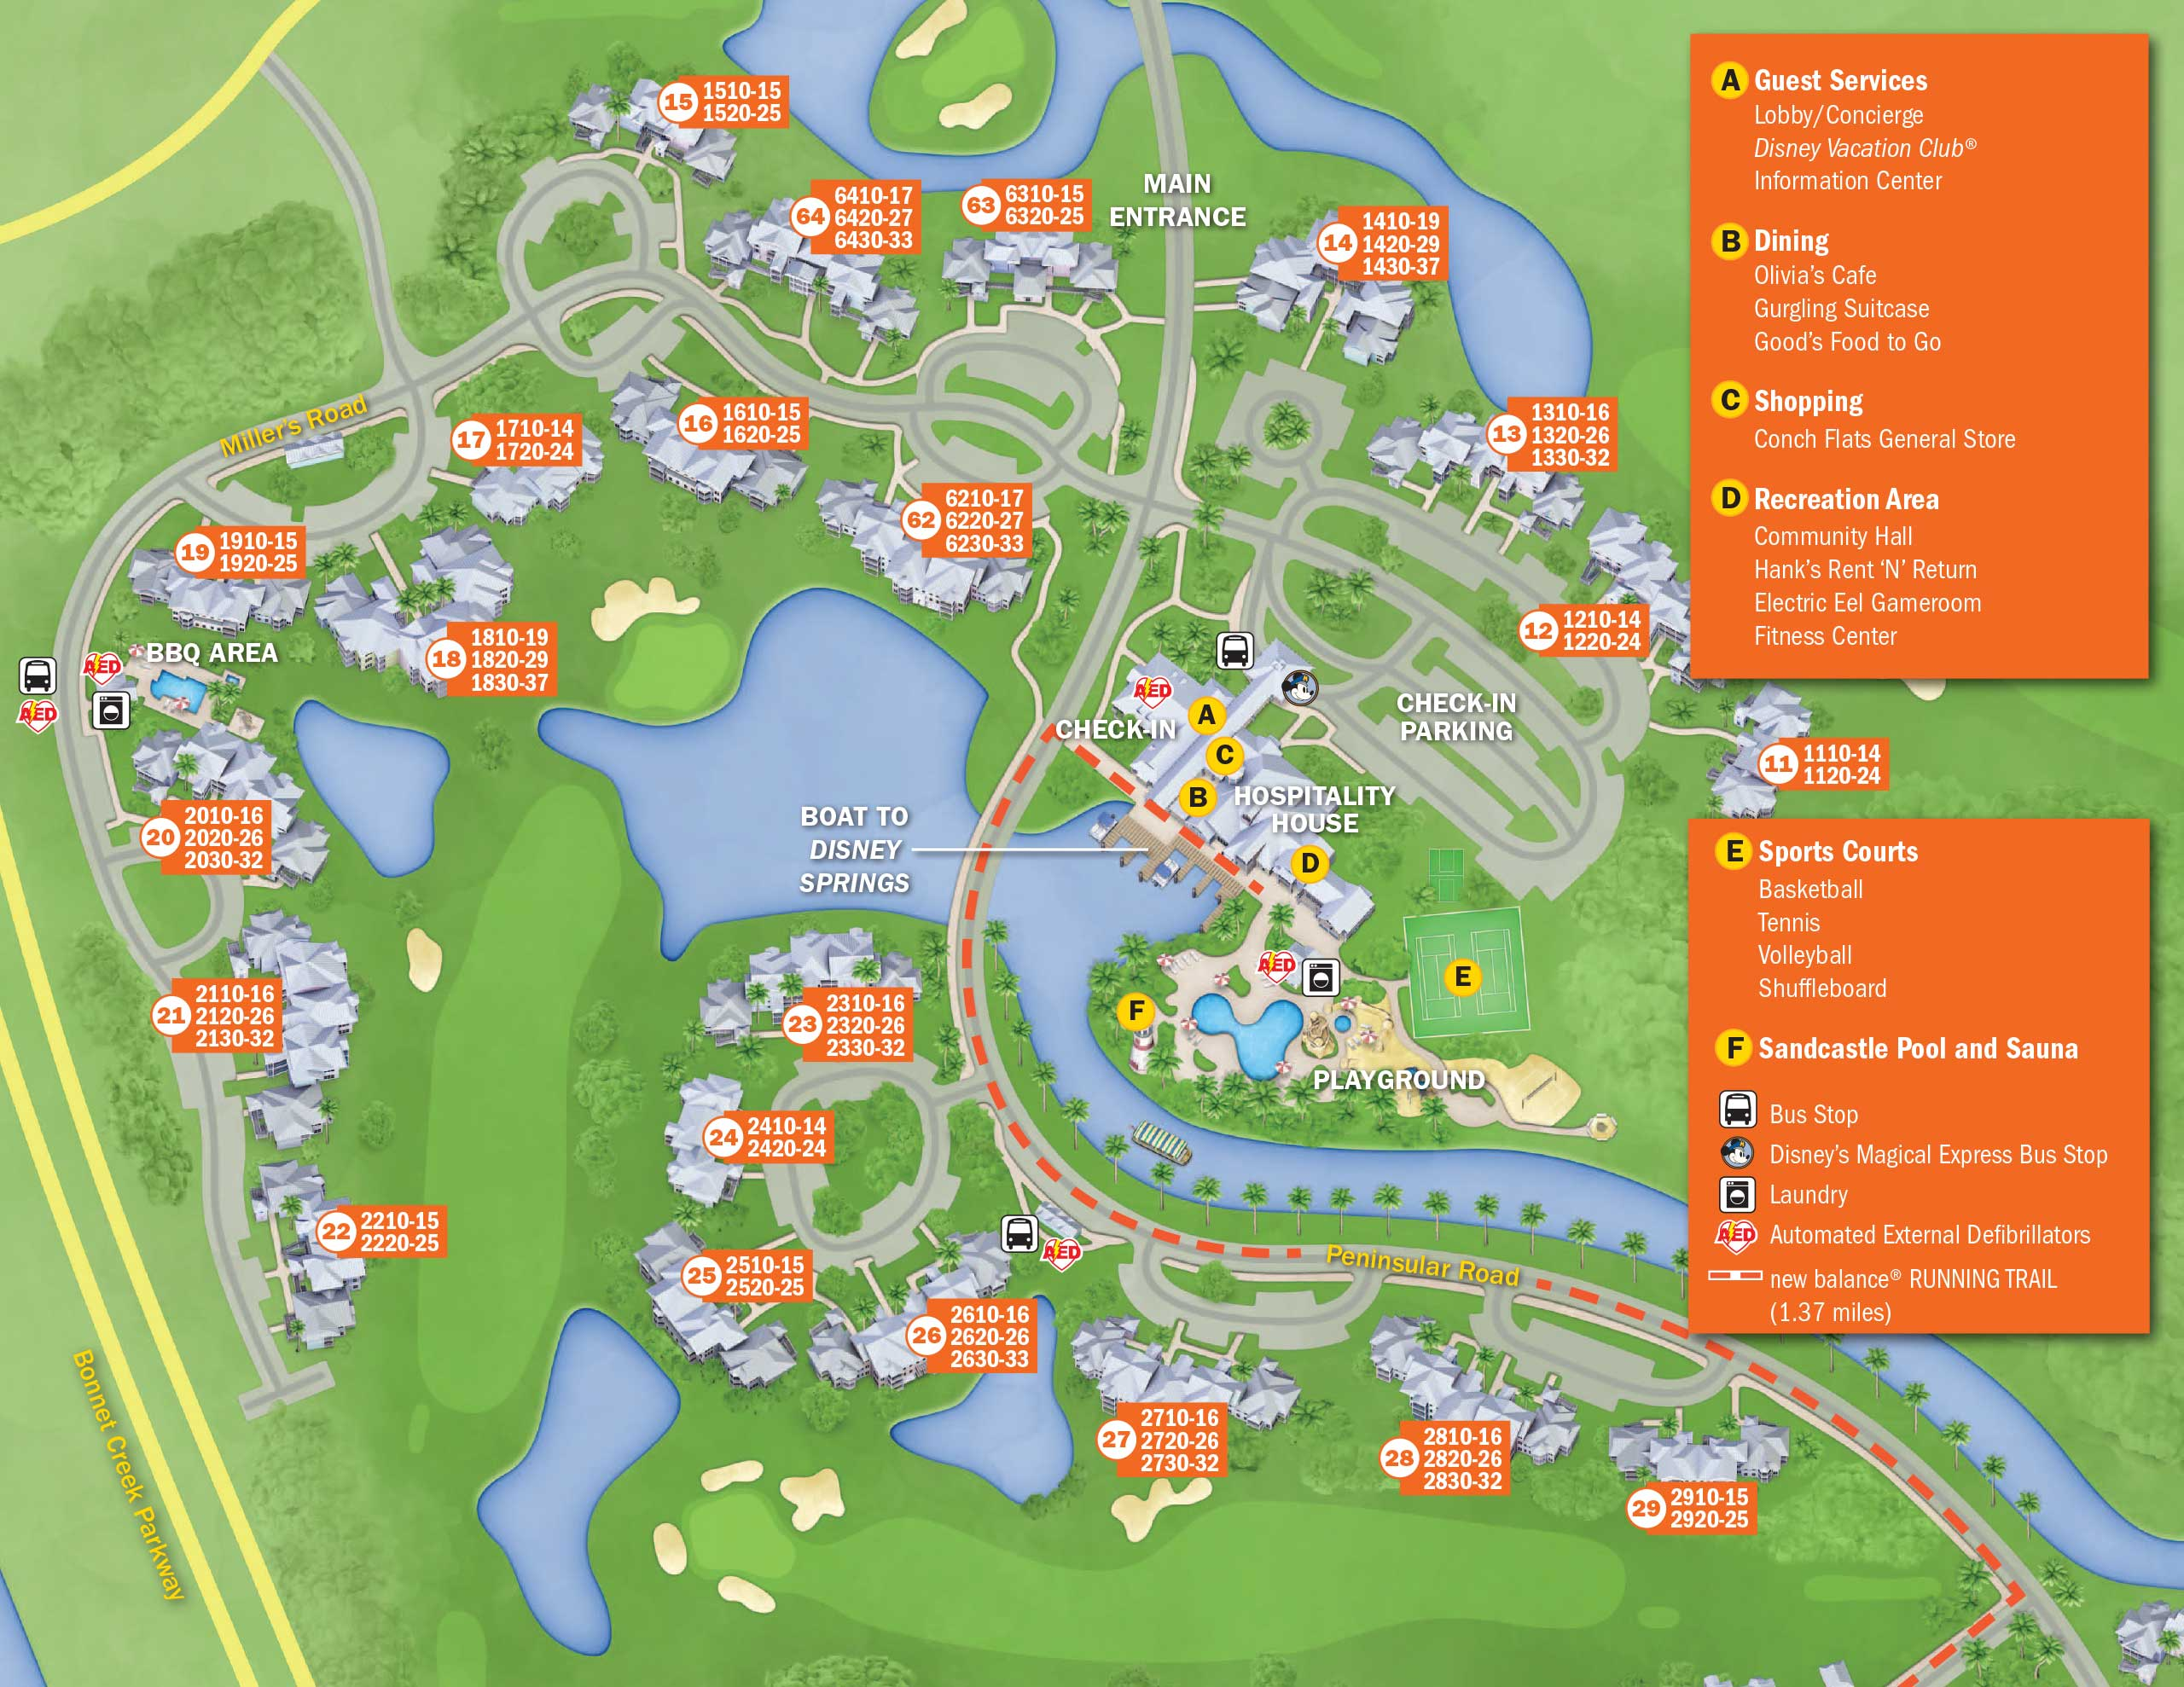 April 2017 Walt Disney World Resort Hotel Maps - Photo 27 of 33 on map of downtown disney, map of disney's coronado springs resort, map of magic kingdom, map of rivers of the world, disney port orleans resort, map of disney's boardwalk resort, map of florida resort, map of disney movies, map of disney property resorts, map of bimini bay resort, map of maui resort, map of ft wilderness resort, map of disney tickets, map of disney hotels, map of disney parks, map of disney land, map of seven springs resort, map of disney's hollywood studios, map of walt disney, map of disney's polynesian resort,